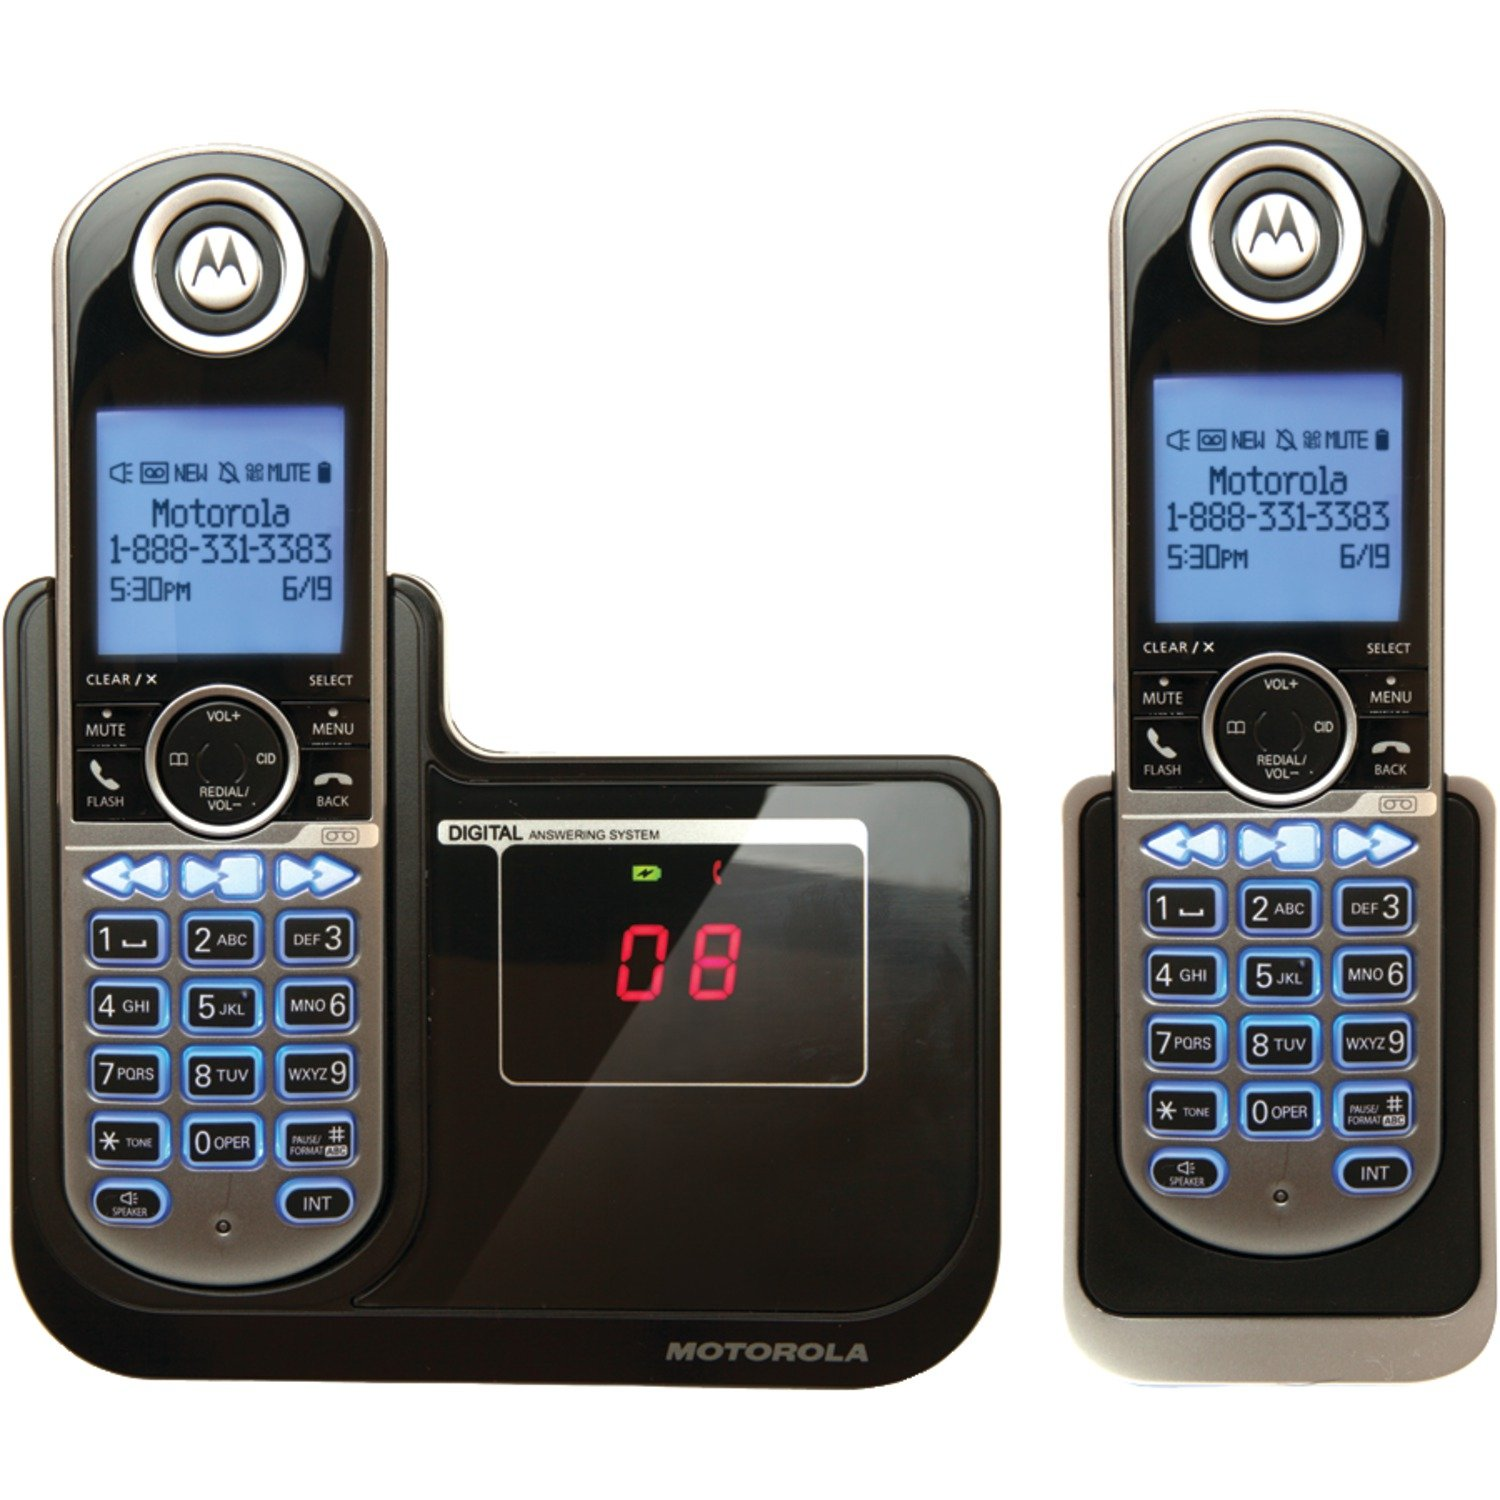 Motorola P1002 DECT 6.0 Cordless Phone with 2 Handsets, Digital Answering System and Customizable Color Back Plates Motorola CA